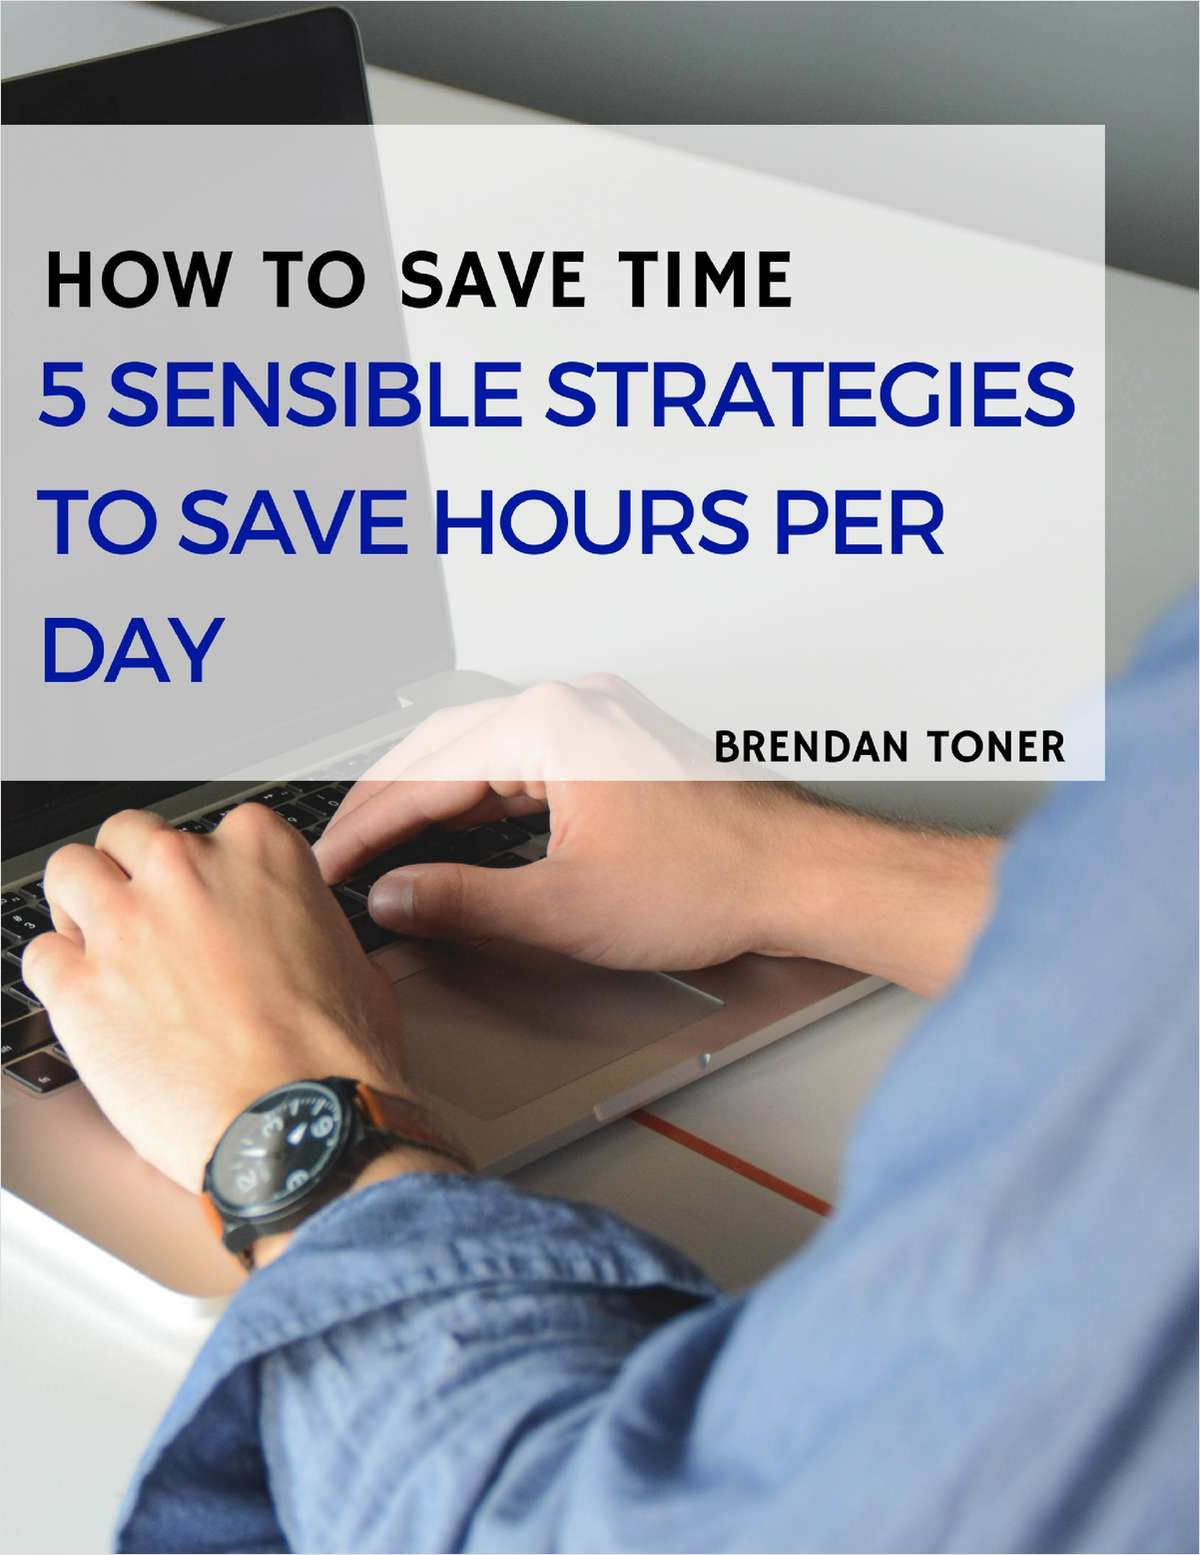 How to Save Time - 5 Sensible Strategies to Save Hours Per Day